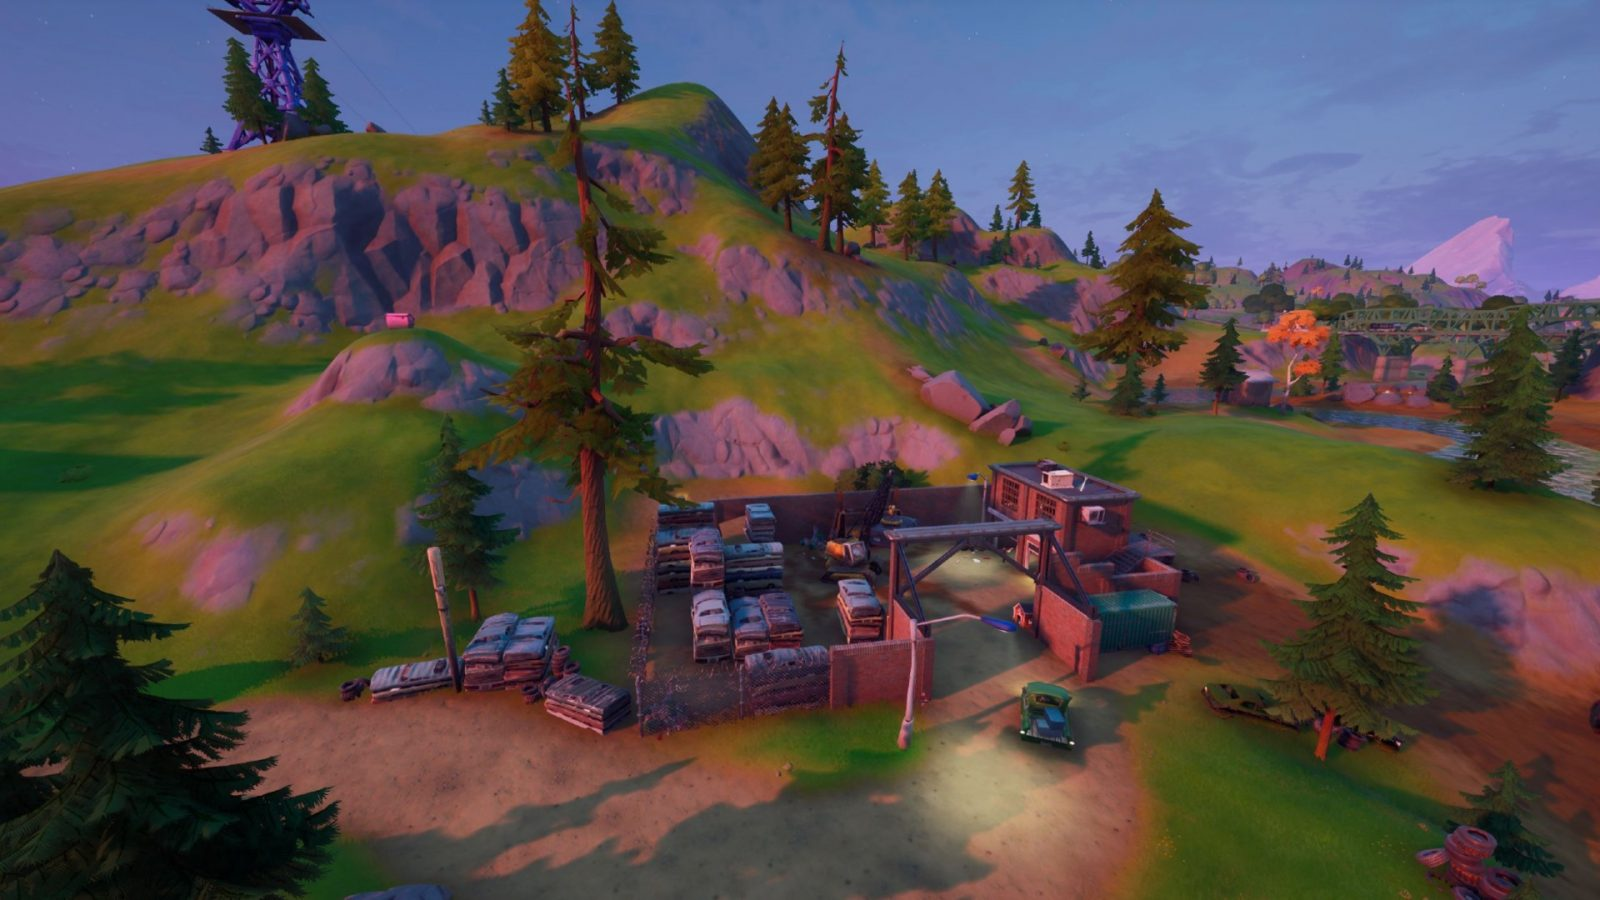 fortnite-compact-cars:-where-to-dance-to-finish-this-week's-battle-pass-mission